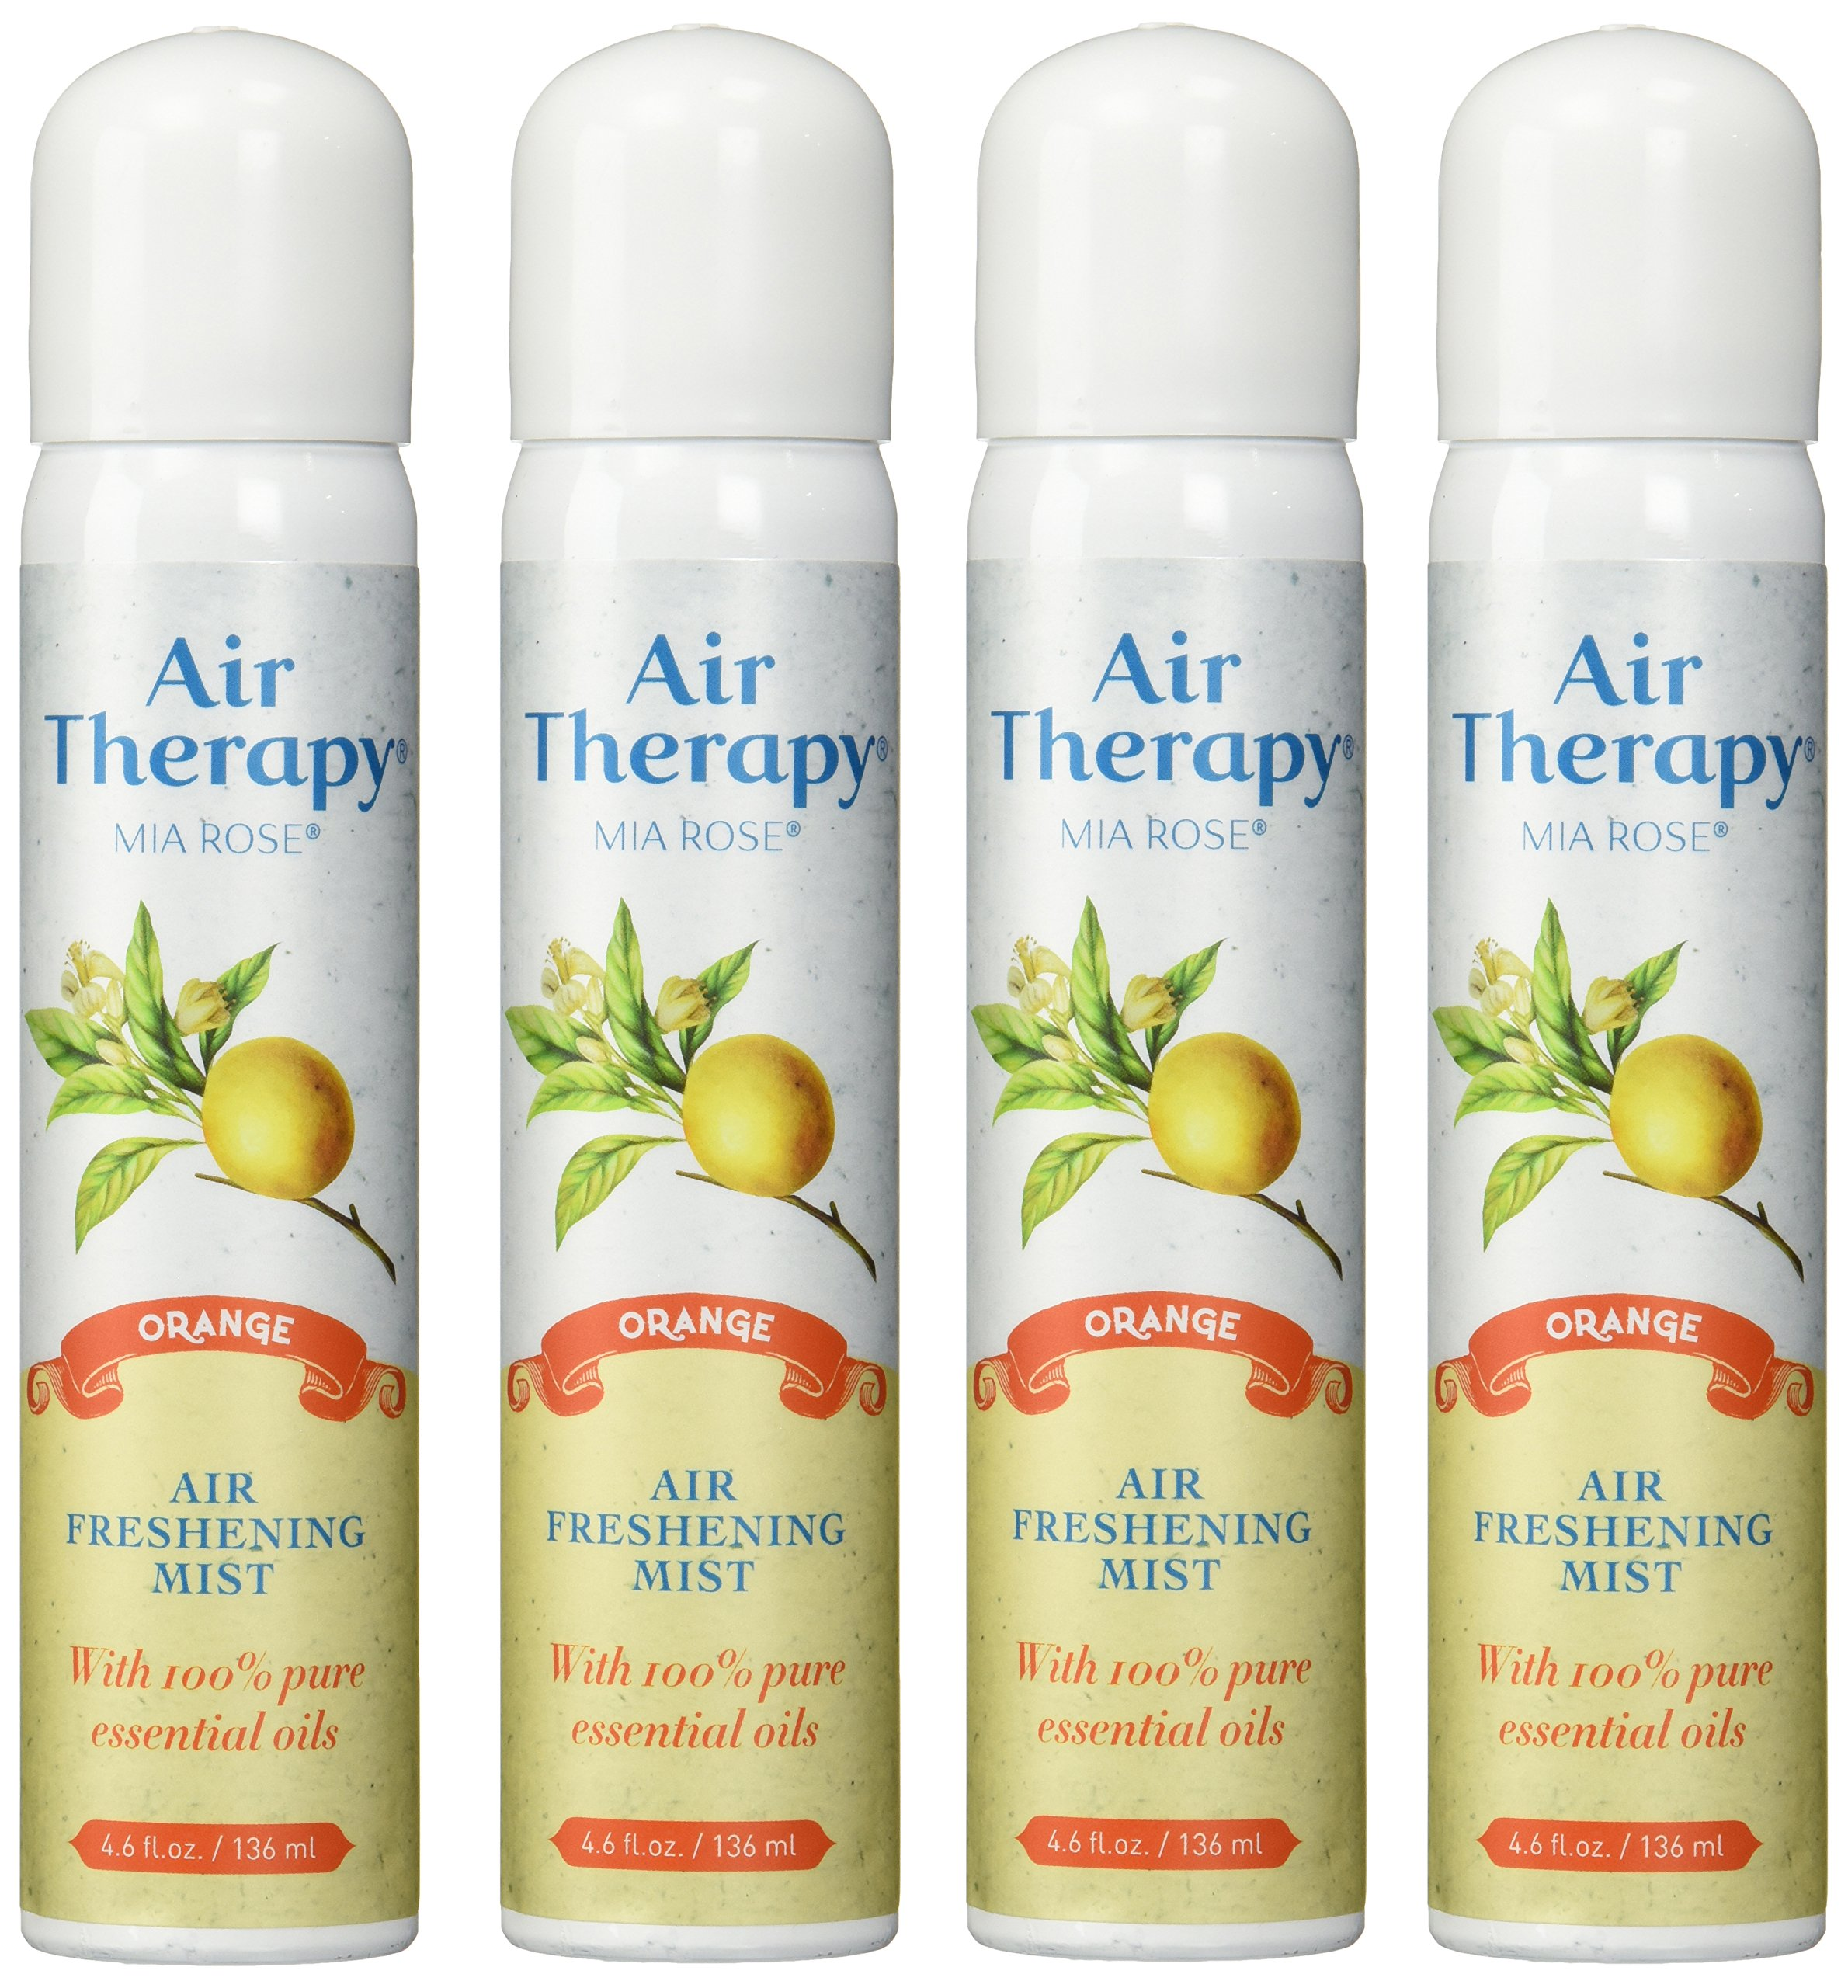 Air Therapy Natural Purifying Mist, Original Orange, 4.6 Ounces (Pack of 4)